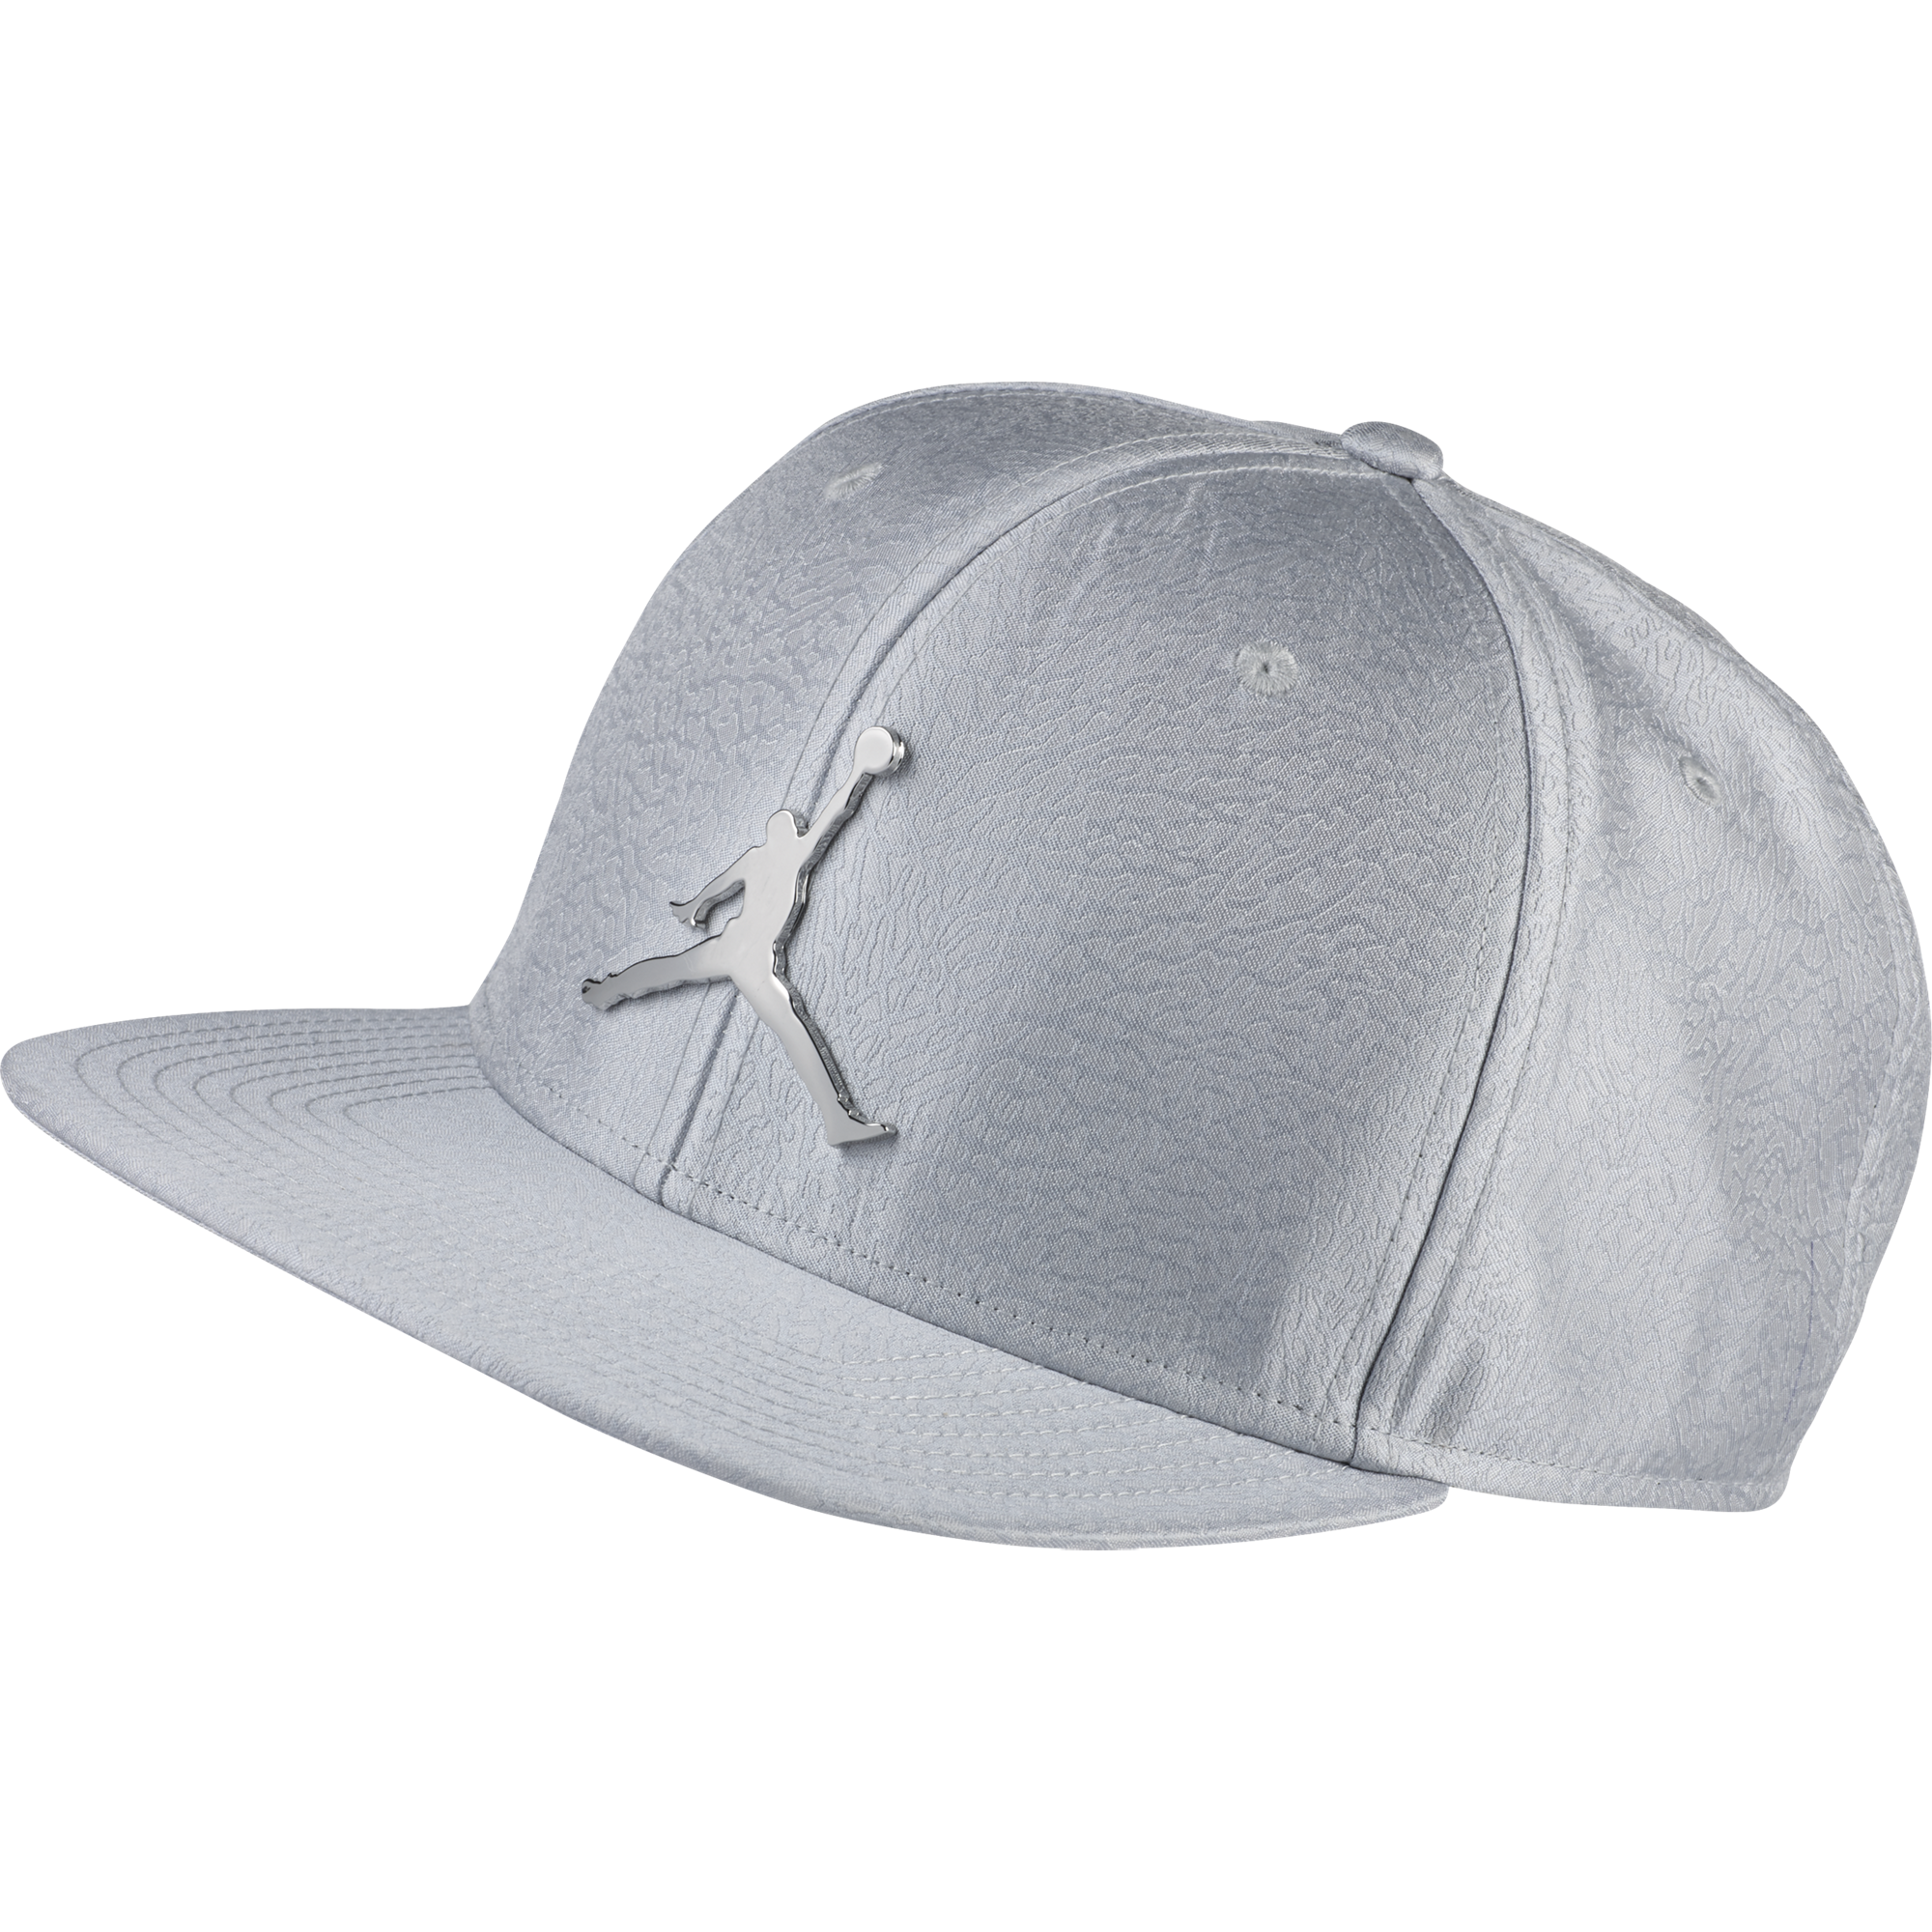 433c65e6fc01d1 ... discount code for air jordan jumpman elephant print ingot pro hat d1e2e  9e452